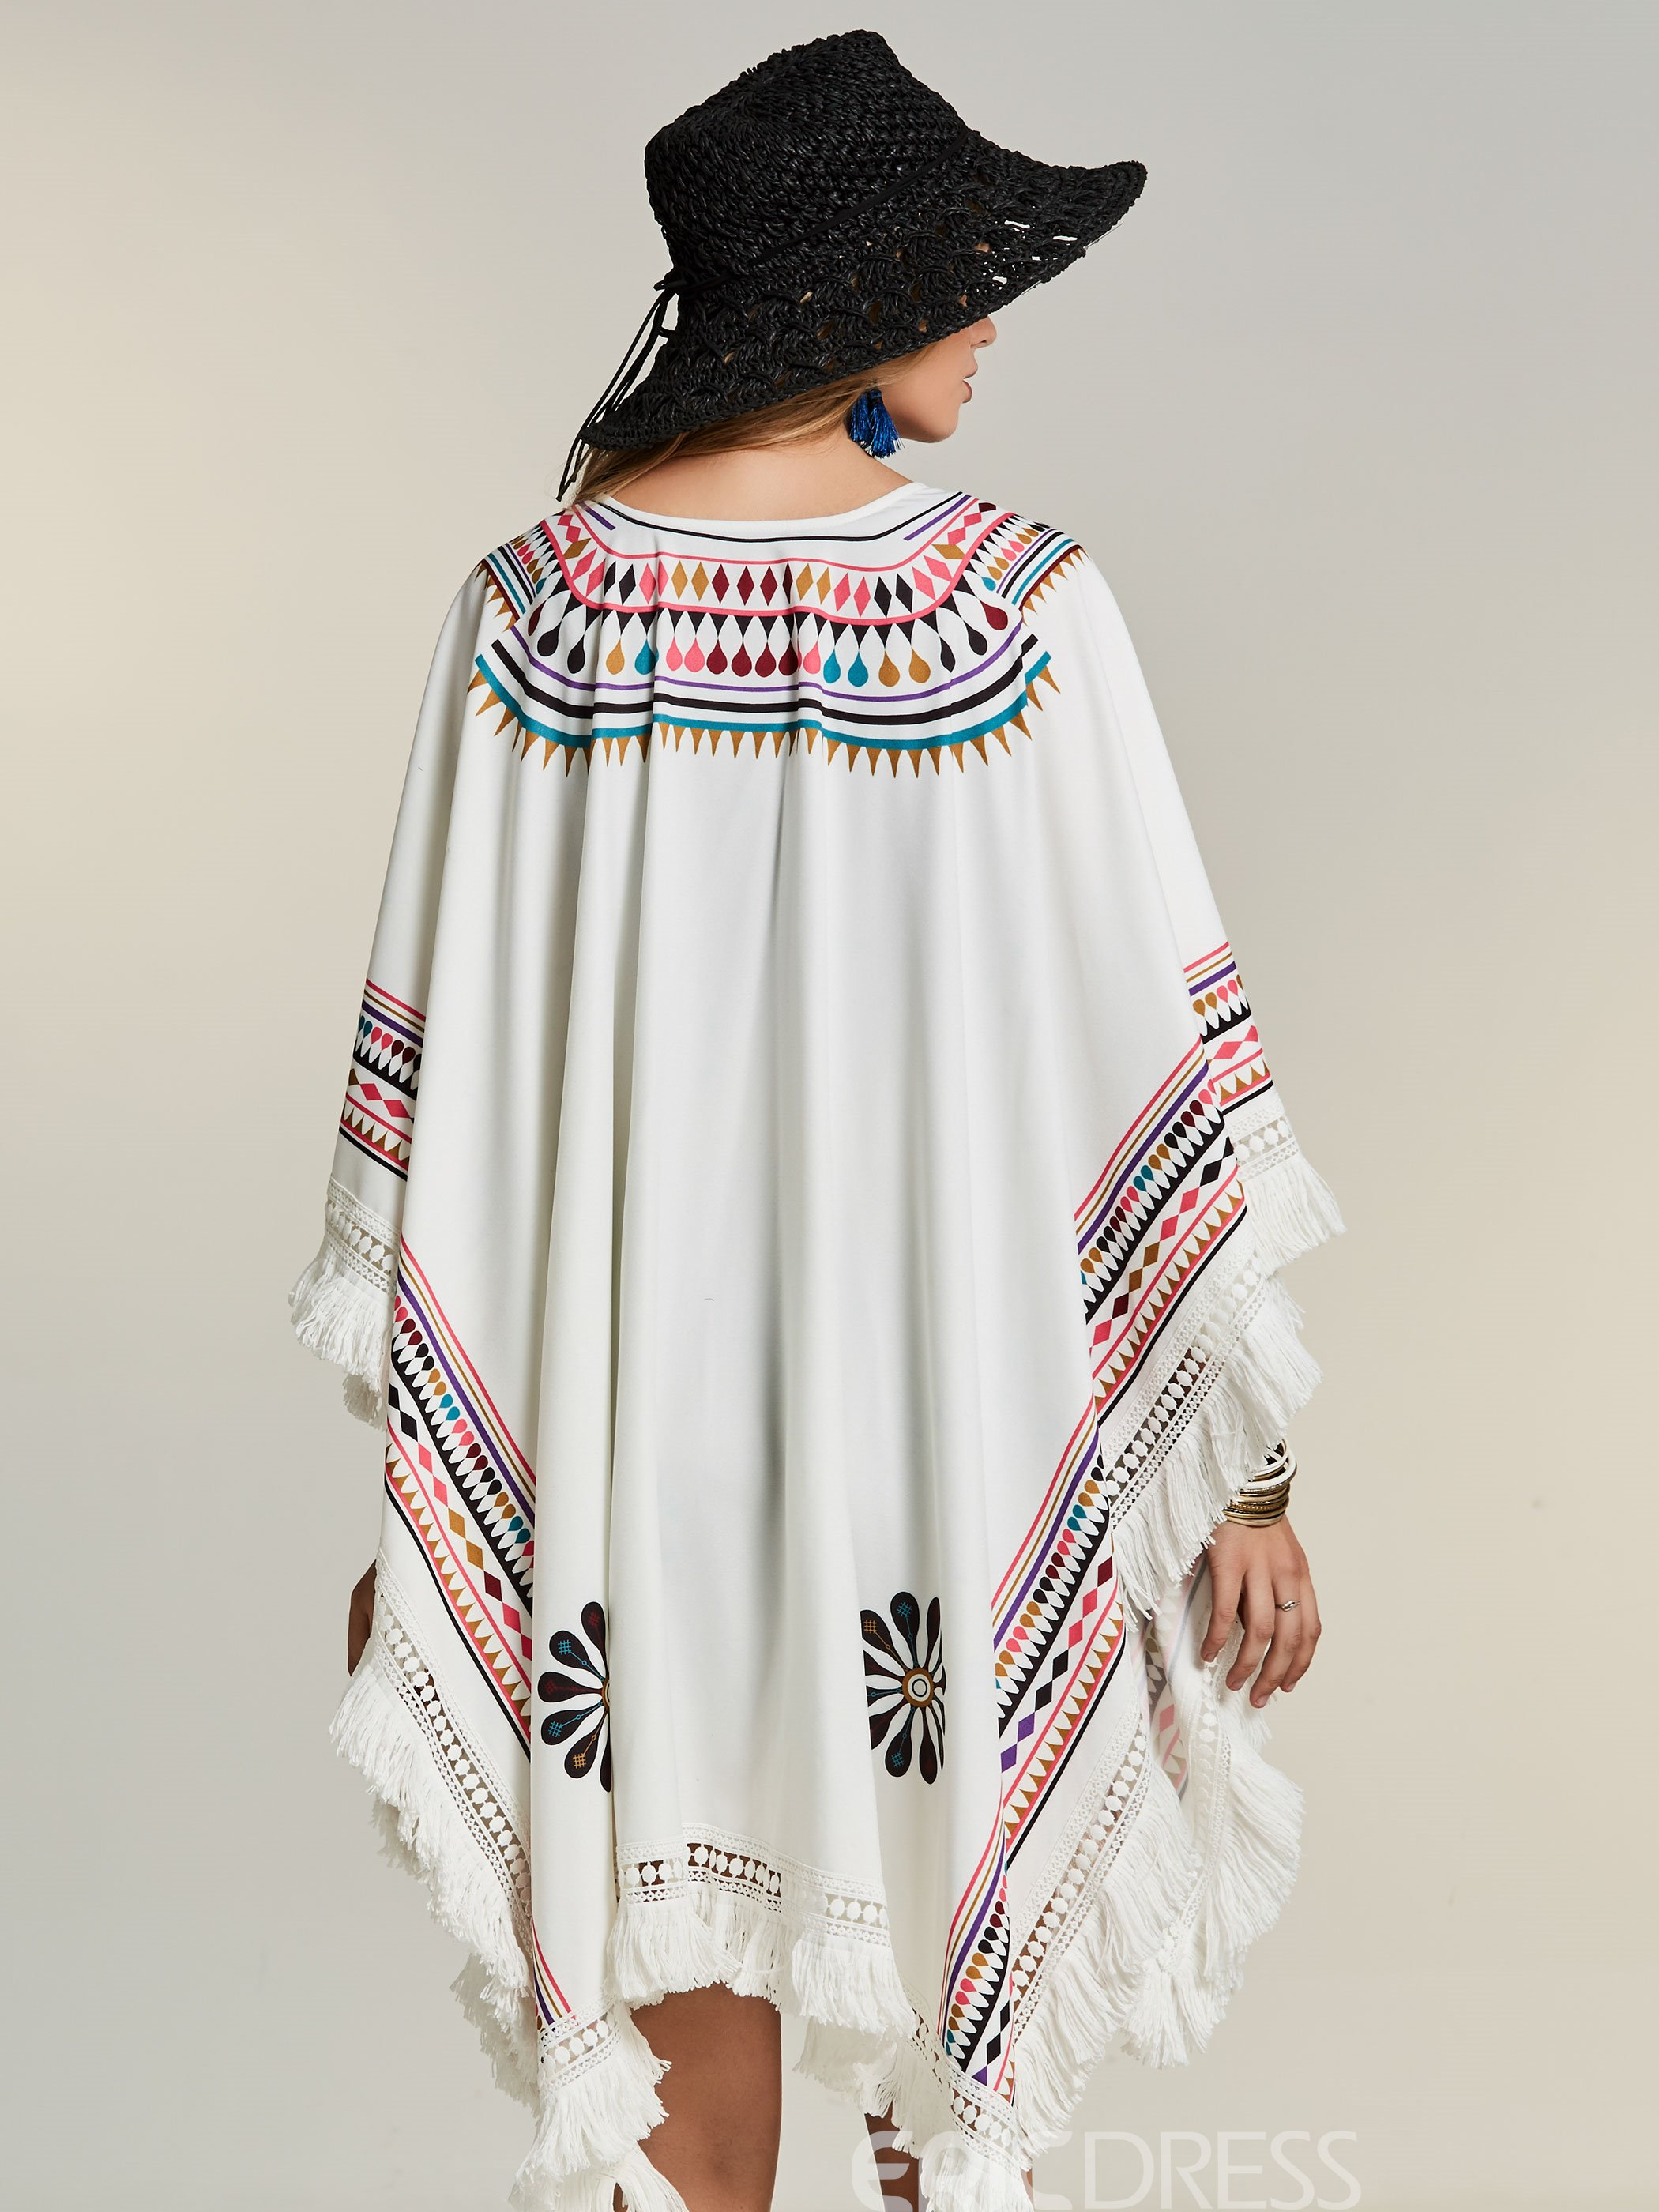 Ericdress Bohoartist Geometric Pattern Floral Cape